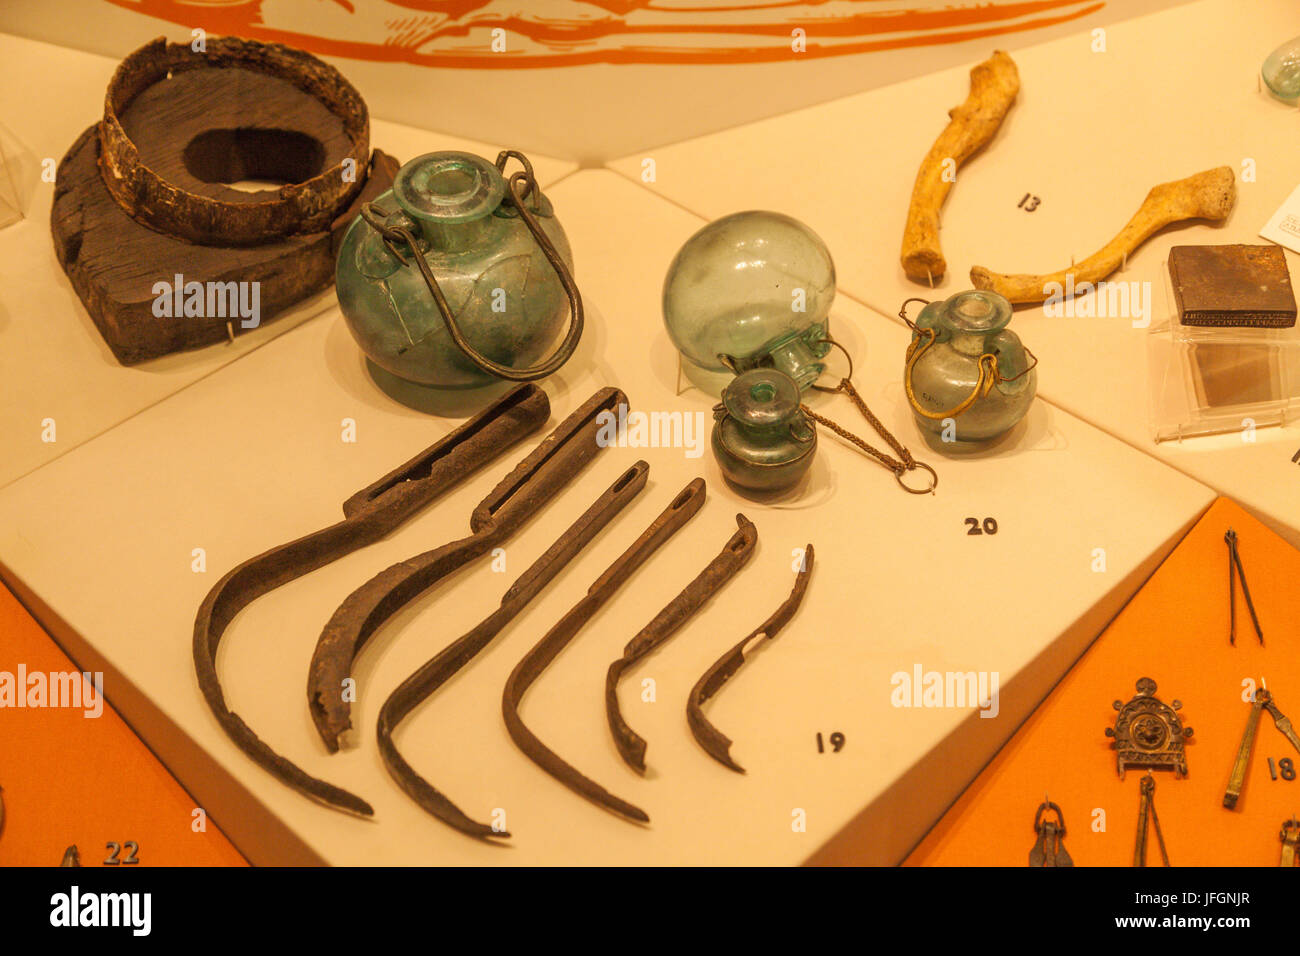 England, London, The City, Museum of London, Exhibit of Roman Medical and Cosmetic Instruments - Stock Image